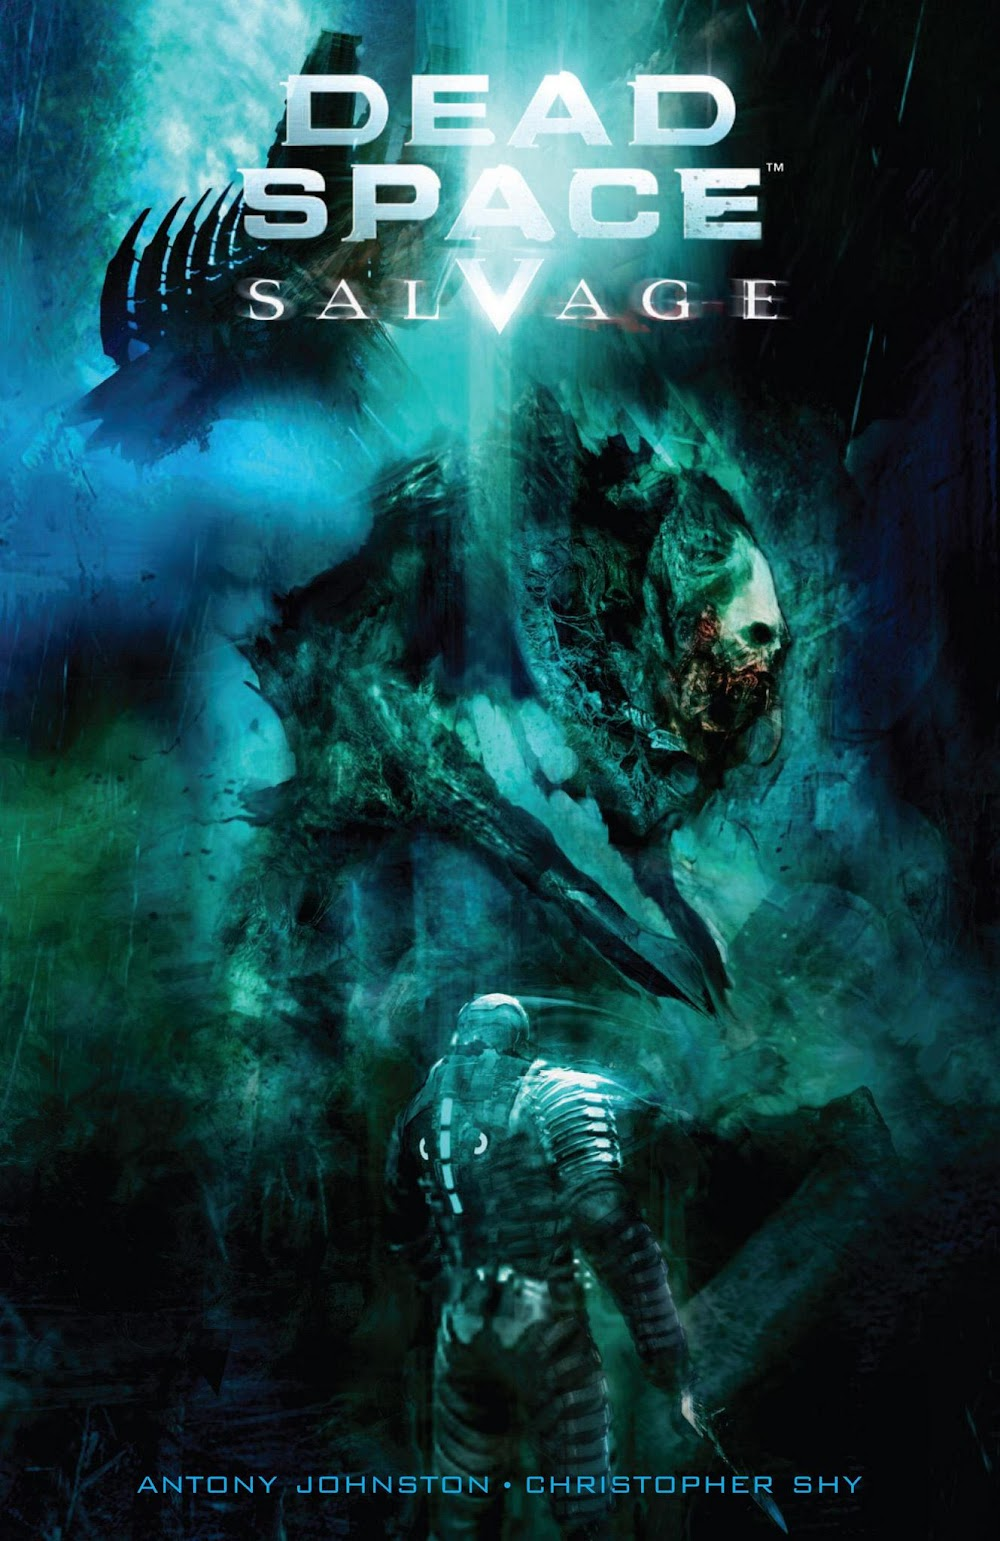 Dead Space - Salvage (2010)